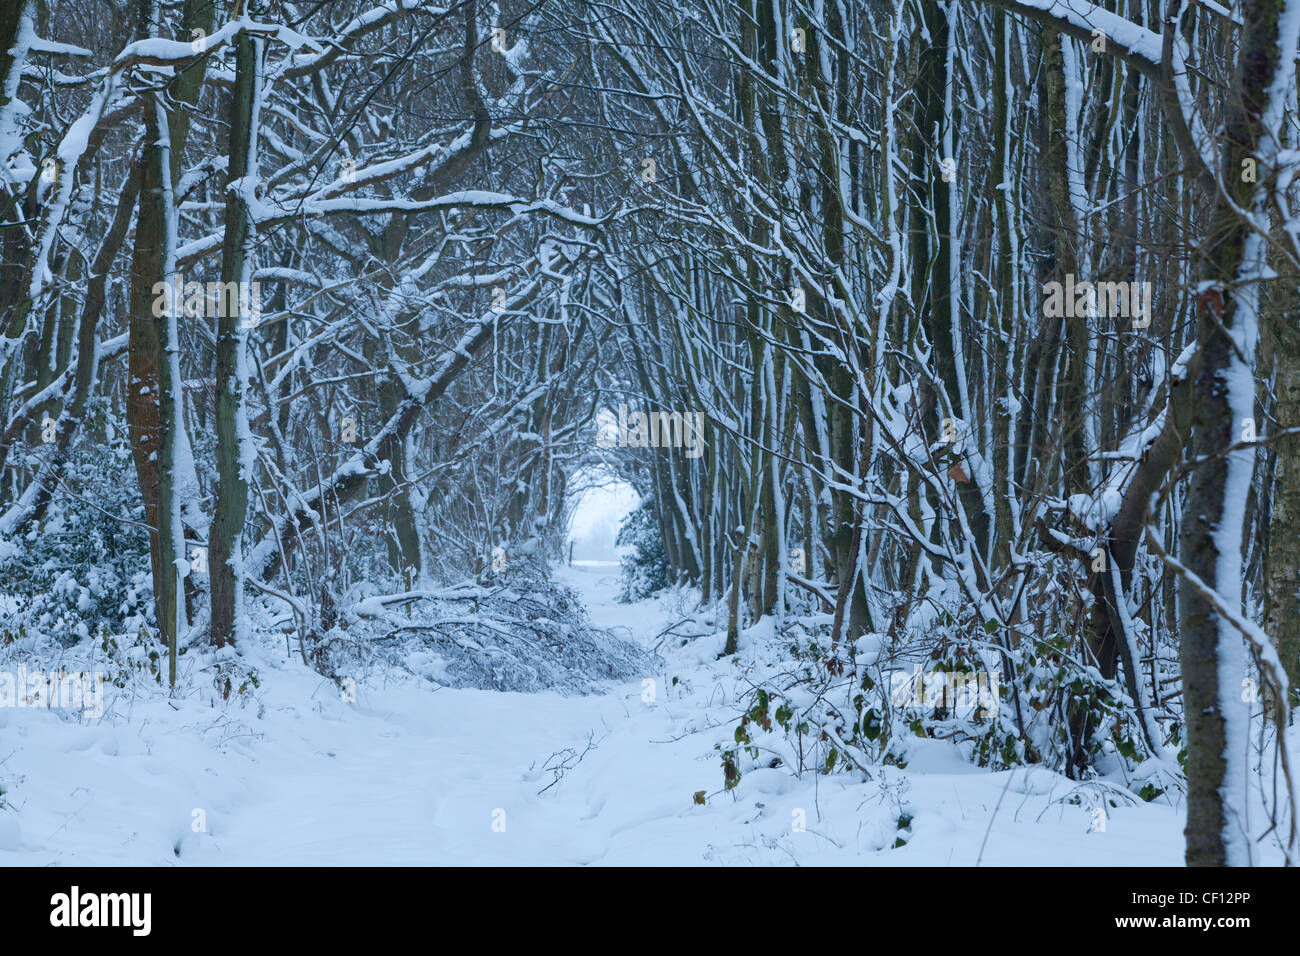 Fresh snow fall in a forest near the village of Stowting in Kent Stock Photo